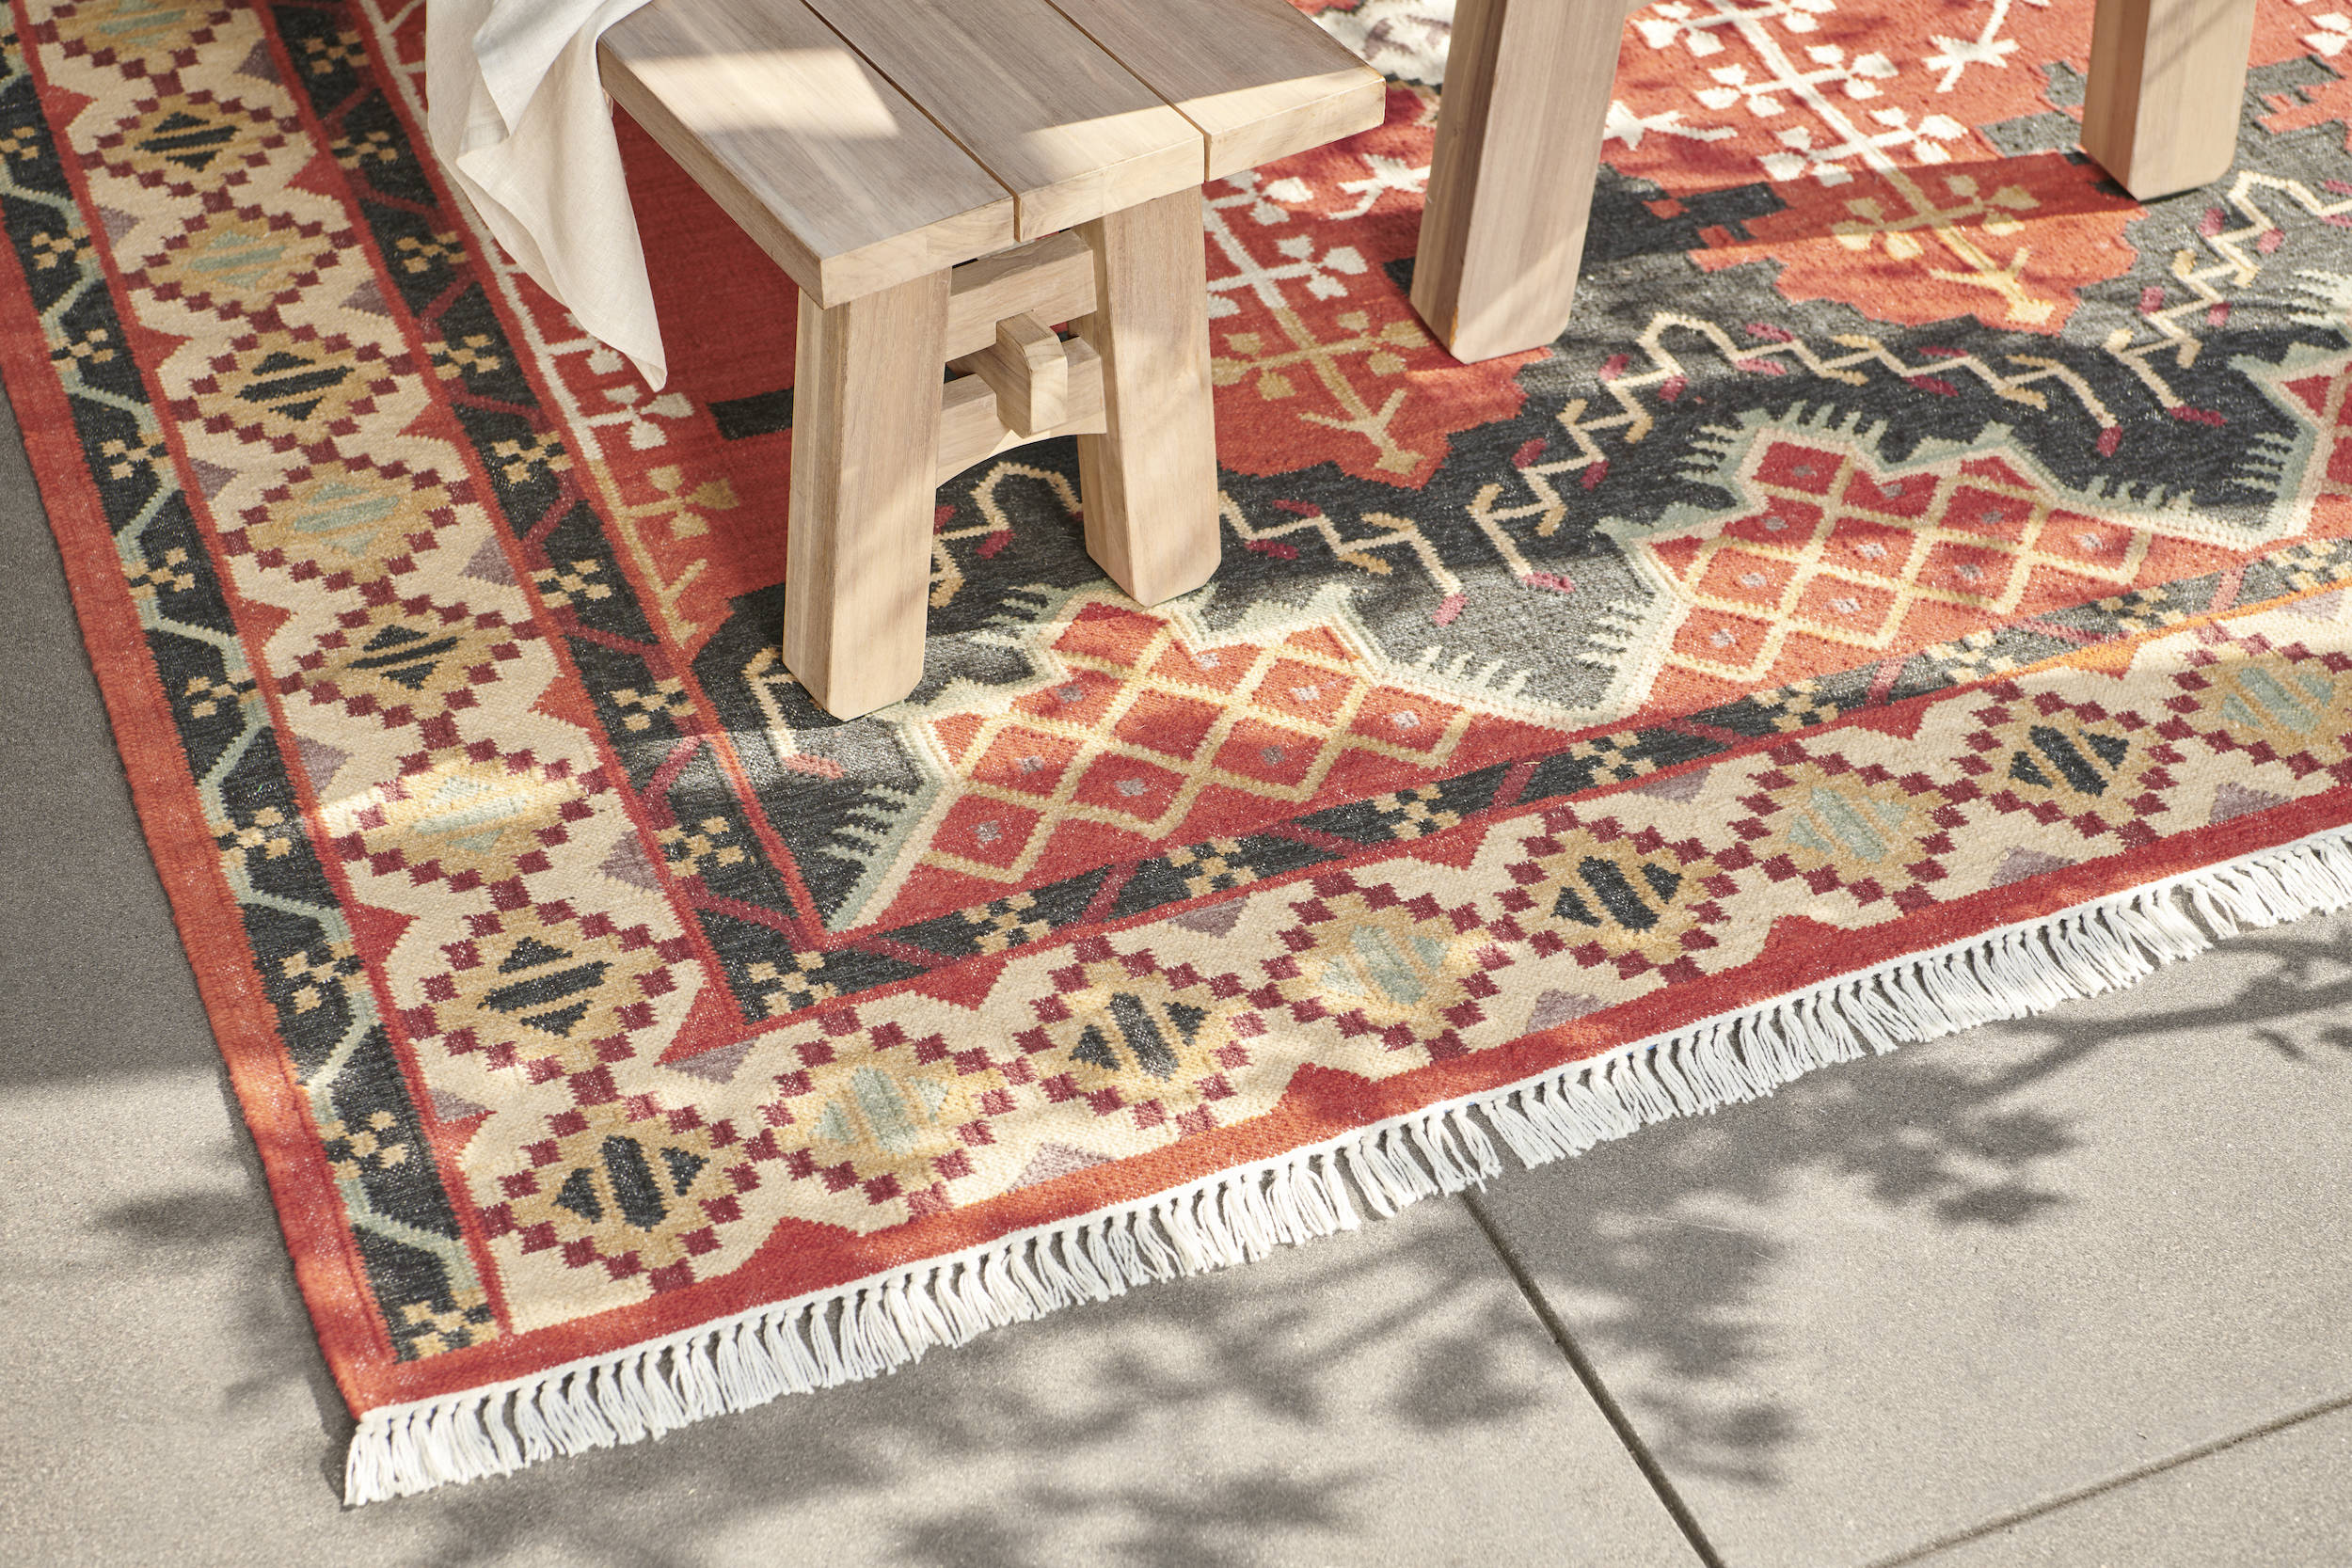 """Just as you would indoors, define your outdoor living """"room"""" with a rug—a sustainably crafted and easy-to-clean indoor-outdoor one, made from recycled polyester (PET) for long-lasting use. This one is the Ortakoy Indoor/Outdoor Rust Flatweave Rug ($449 for the 5' by 8' size), made from 0 percent recycled-polyester yarn."""